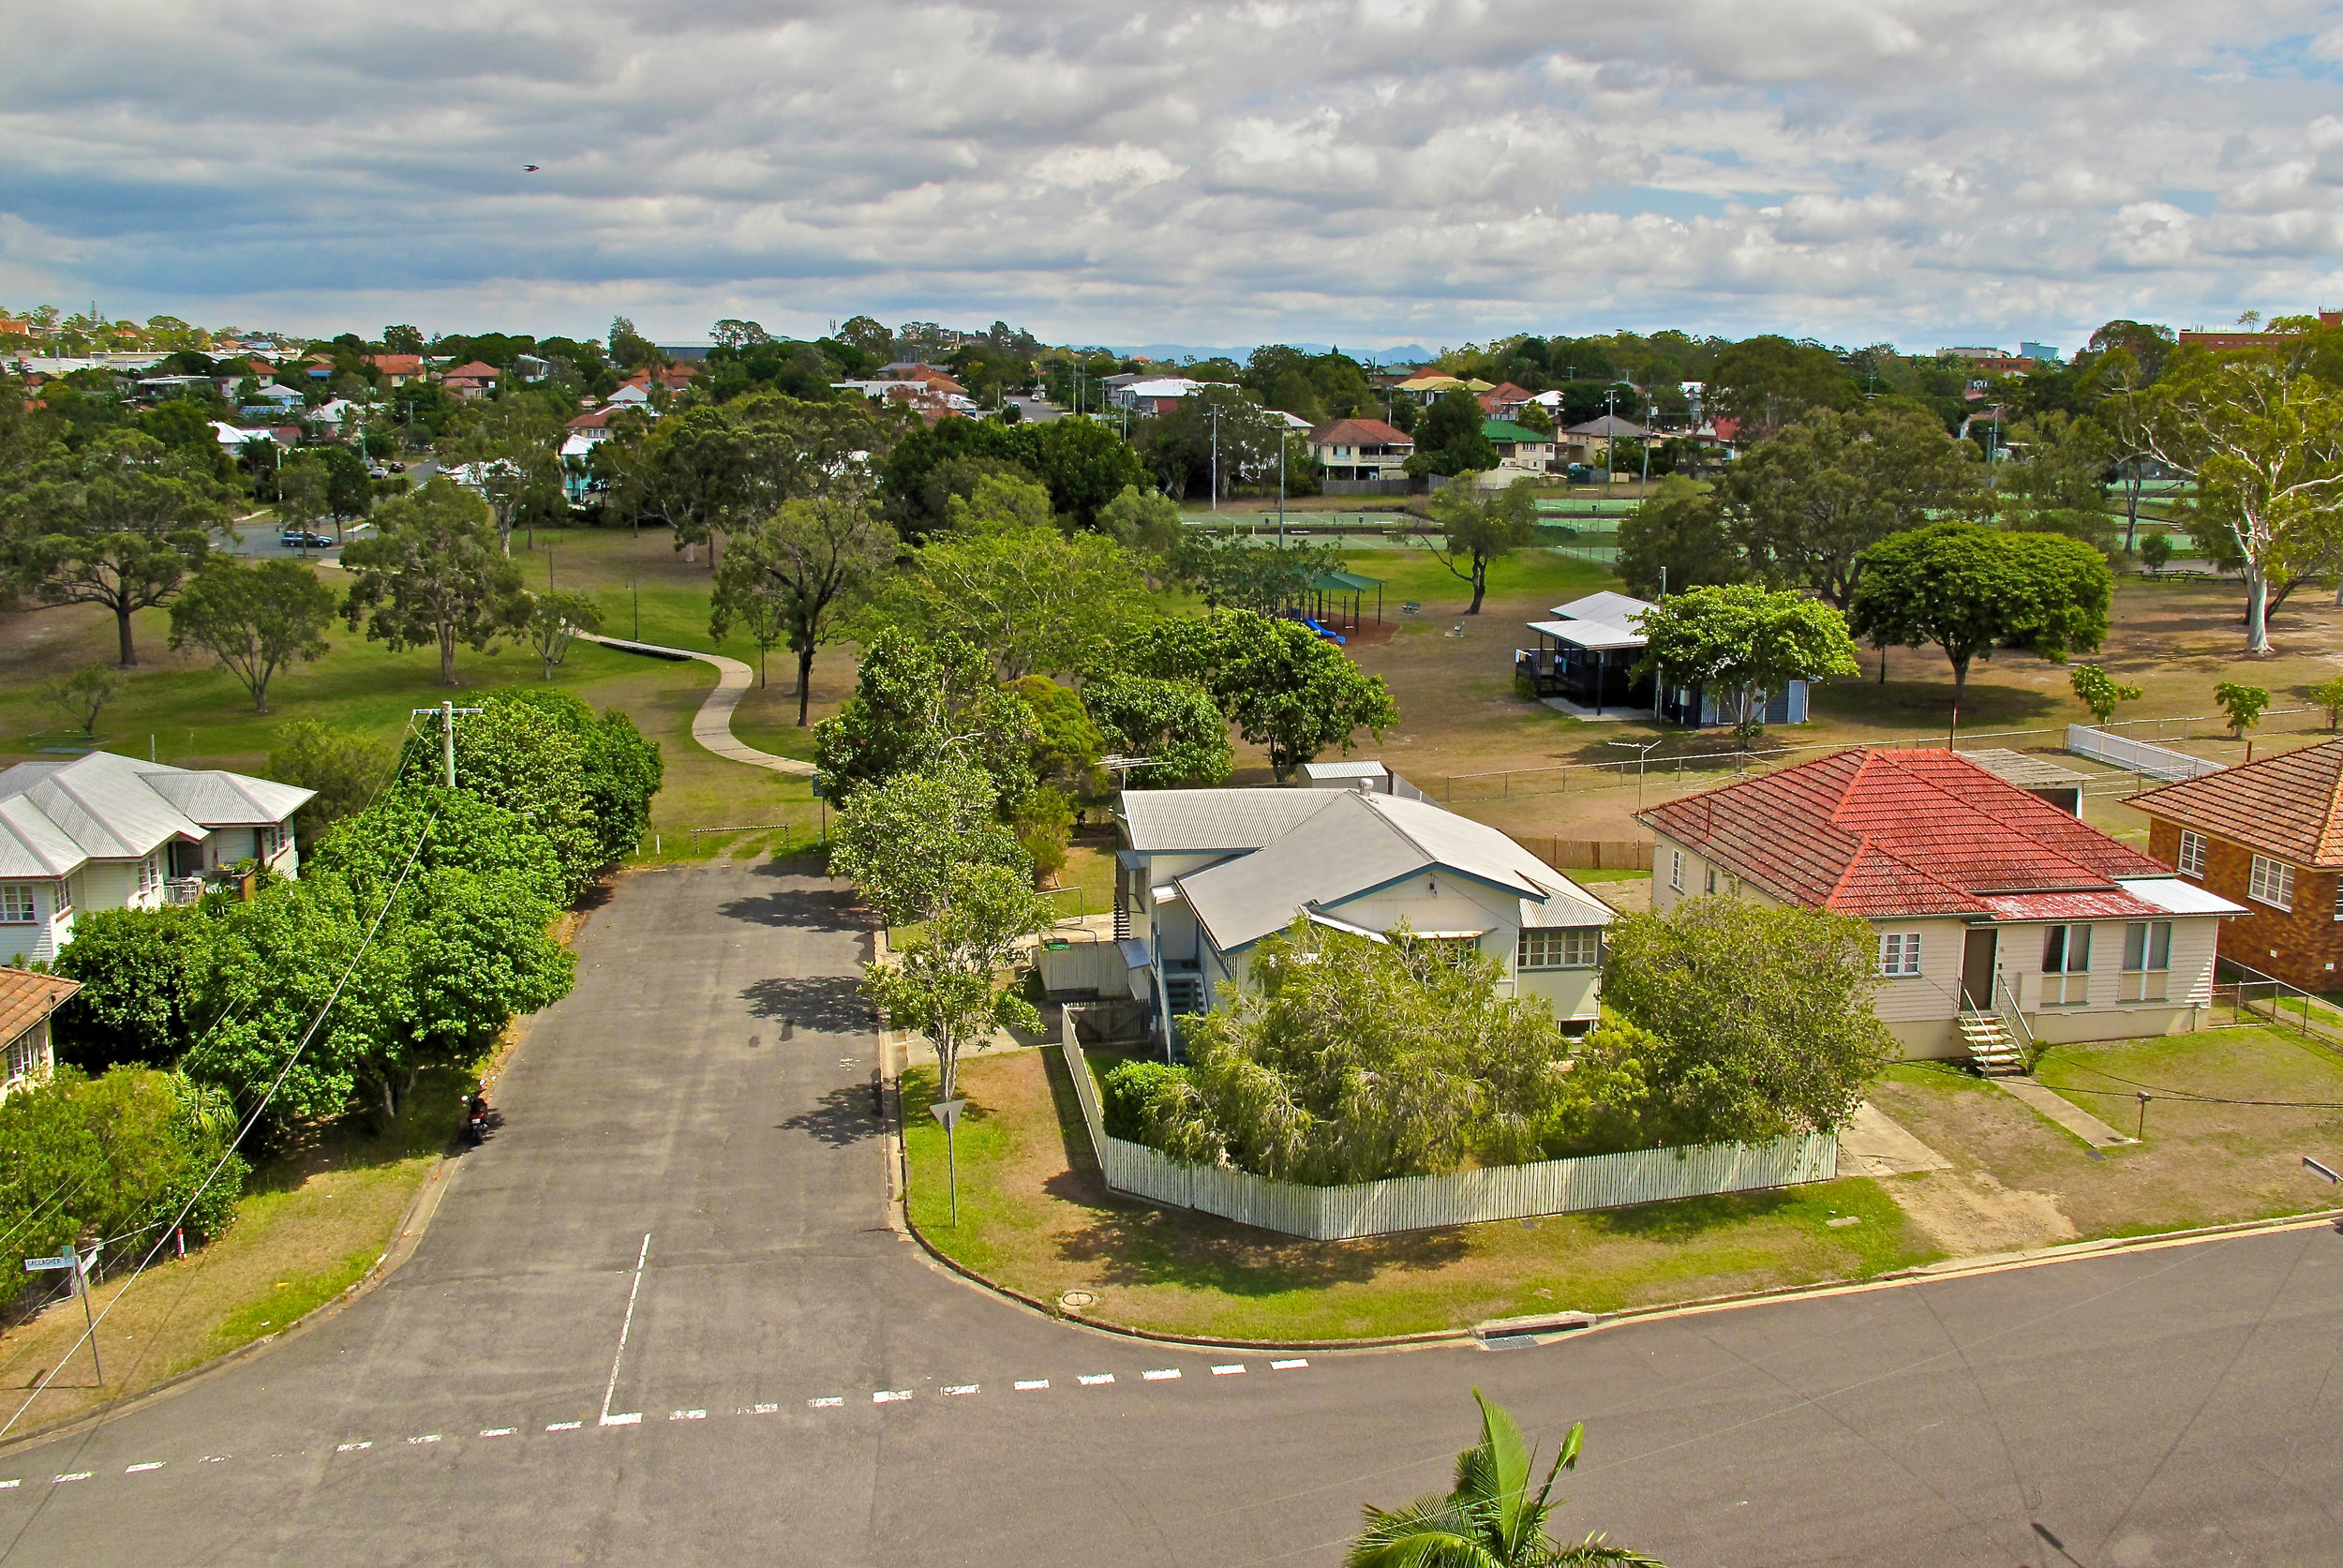 14 Gallagher Terrace, KedronSold: $800,000 -